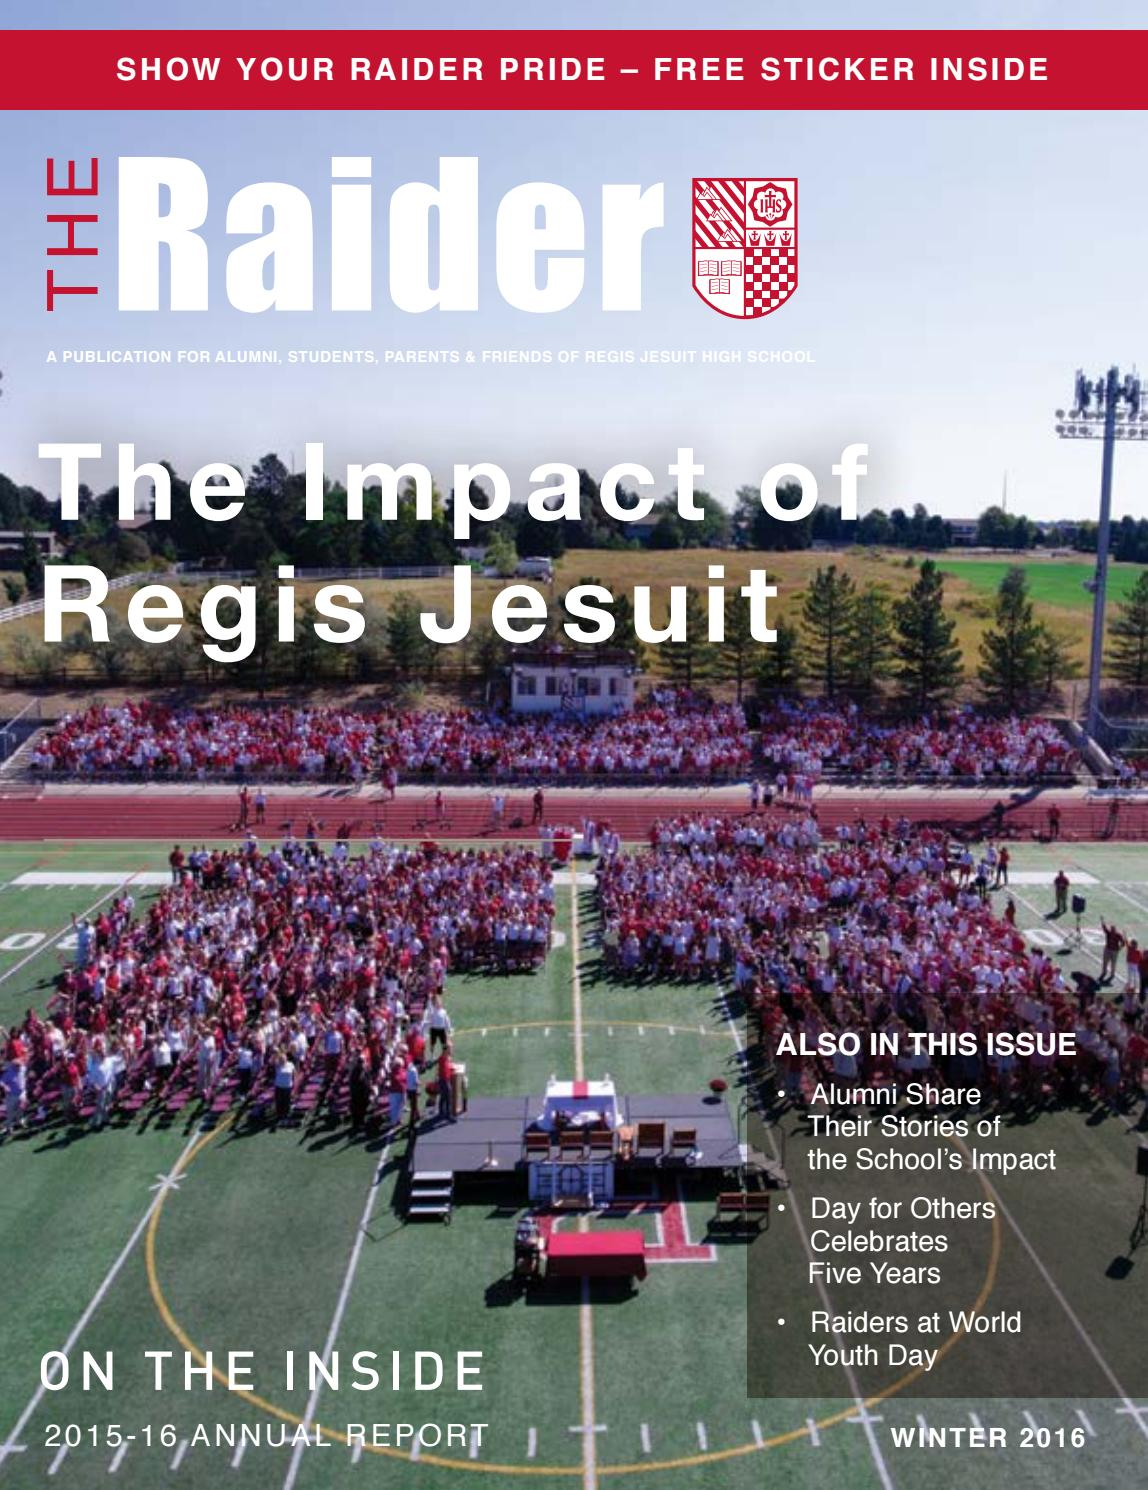 The Raider - Winter 2016 by Regis Jesuit - issuu